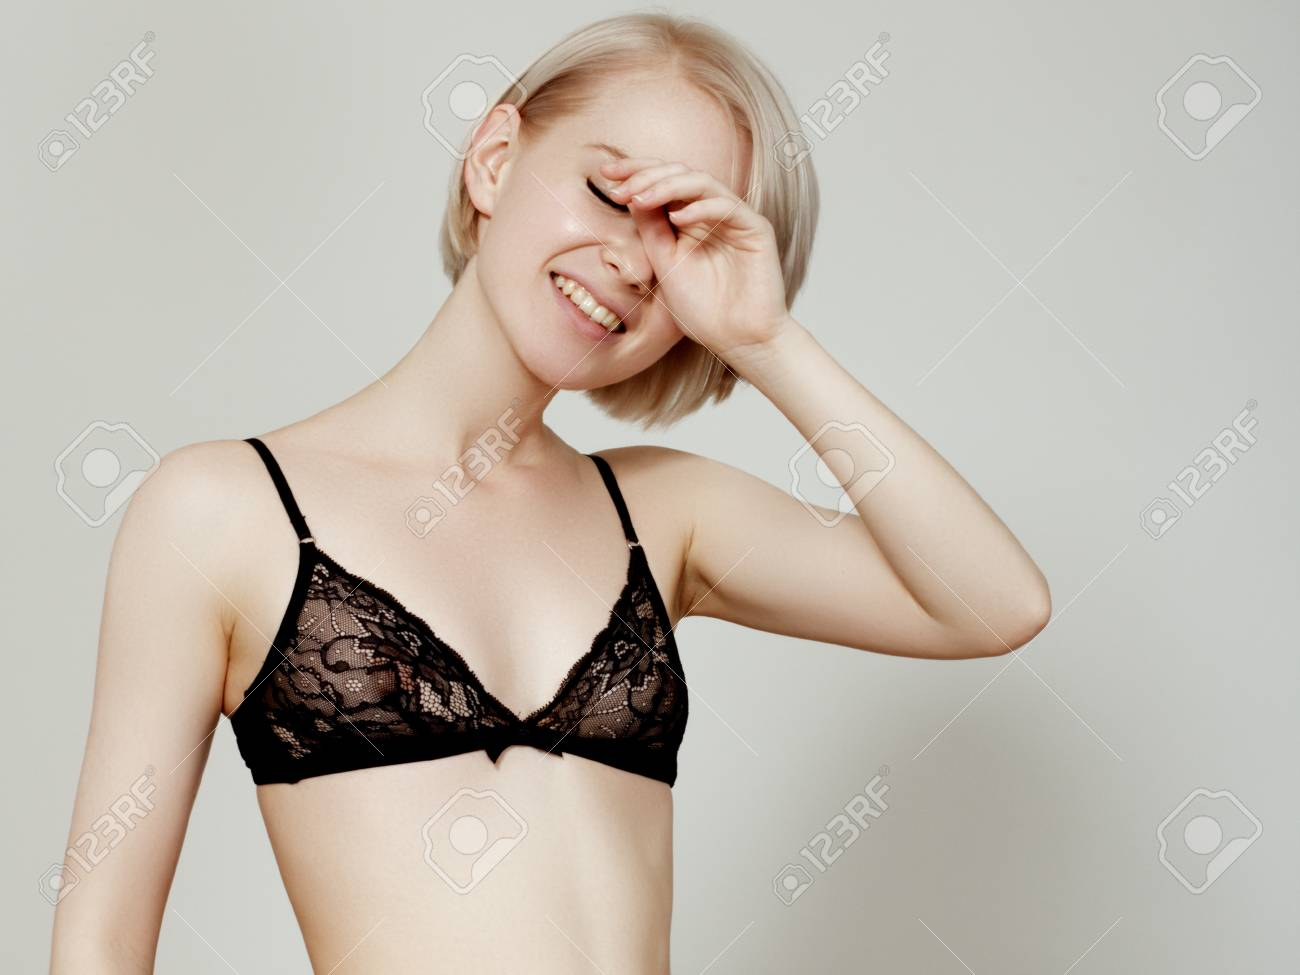 77be7a3cf Stock Photo - Vivacious sexy young blonde woman with a beautiful smile  posing in a black lingerie isolated studio portrait